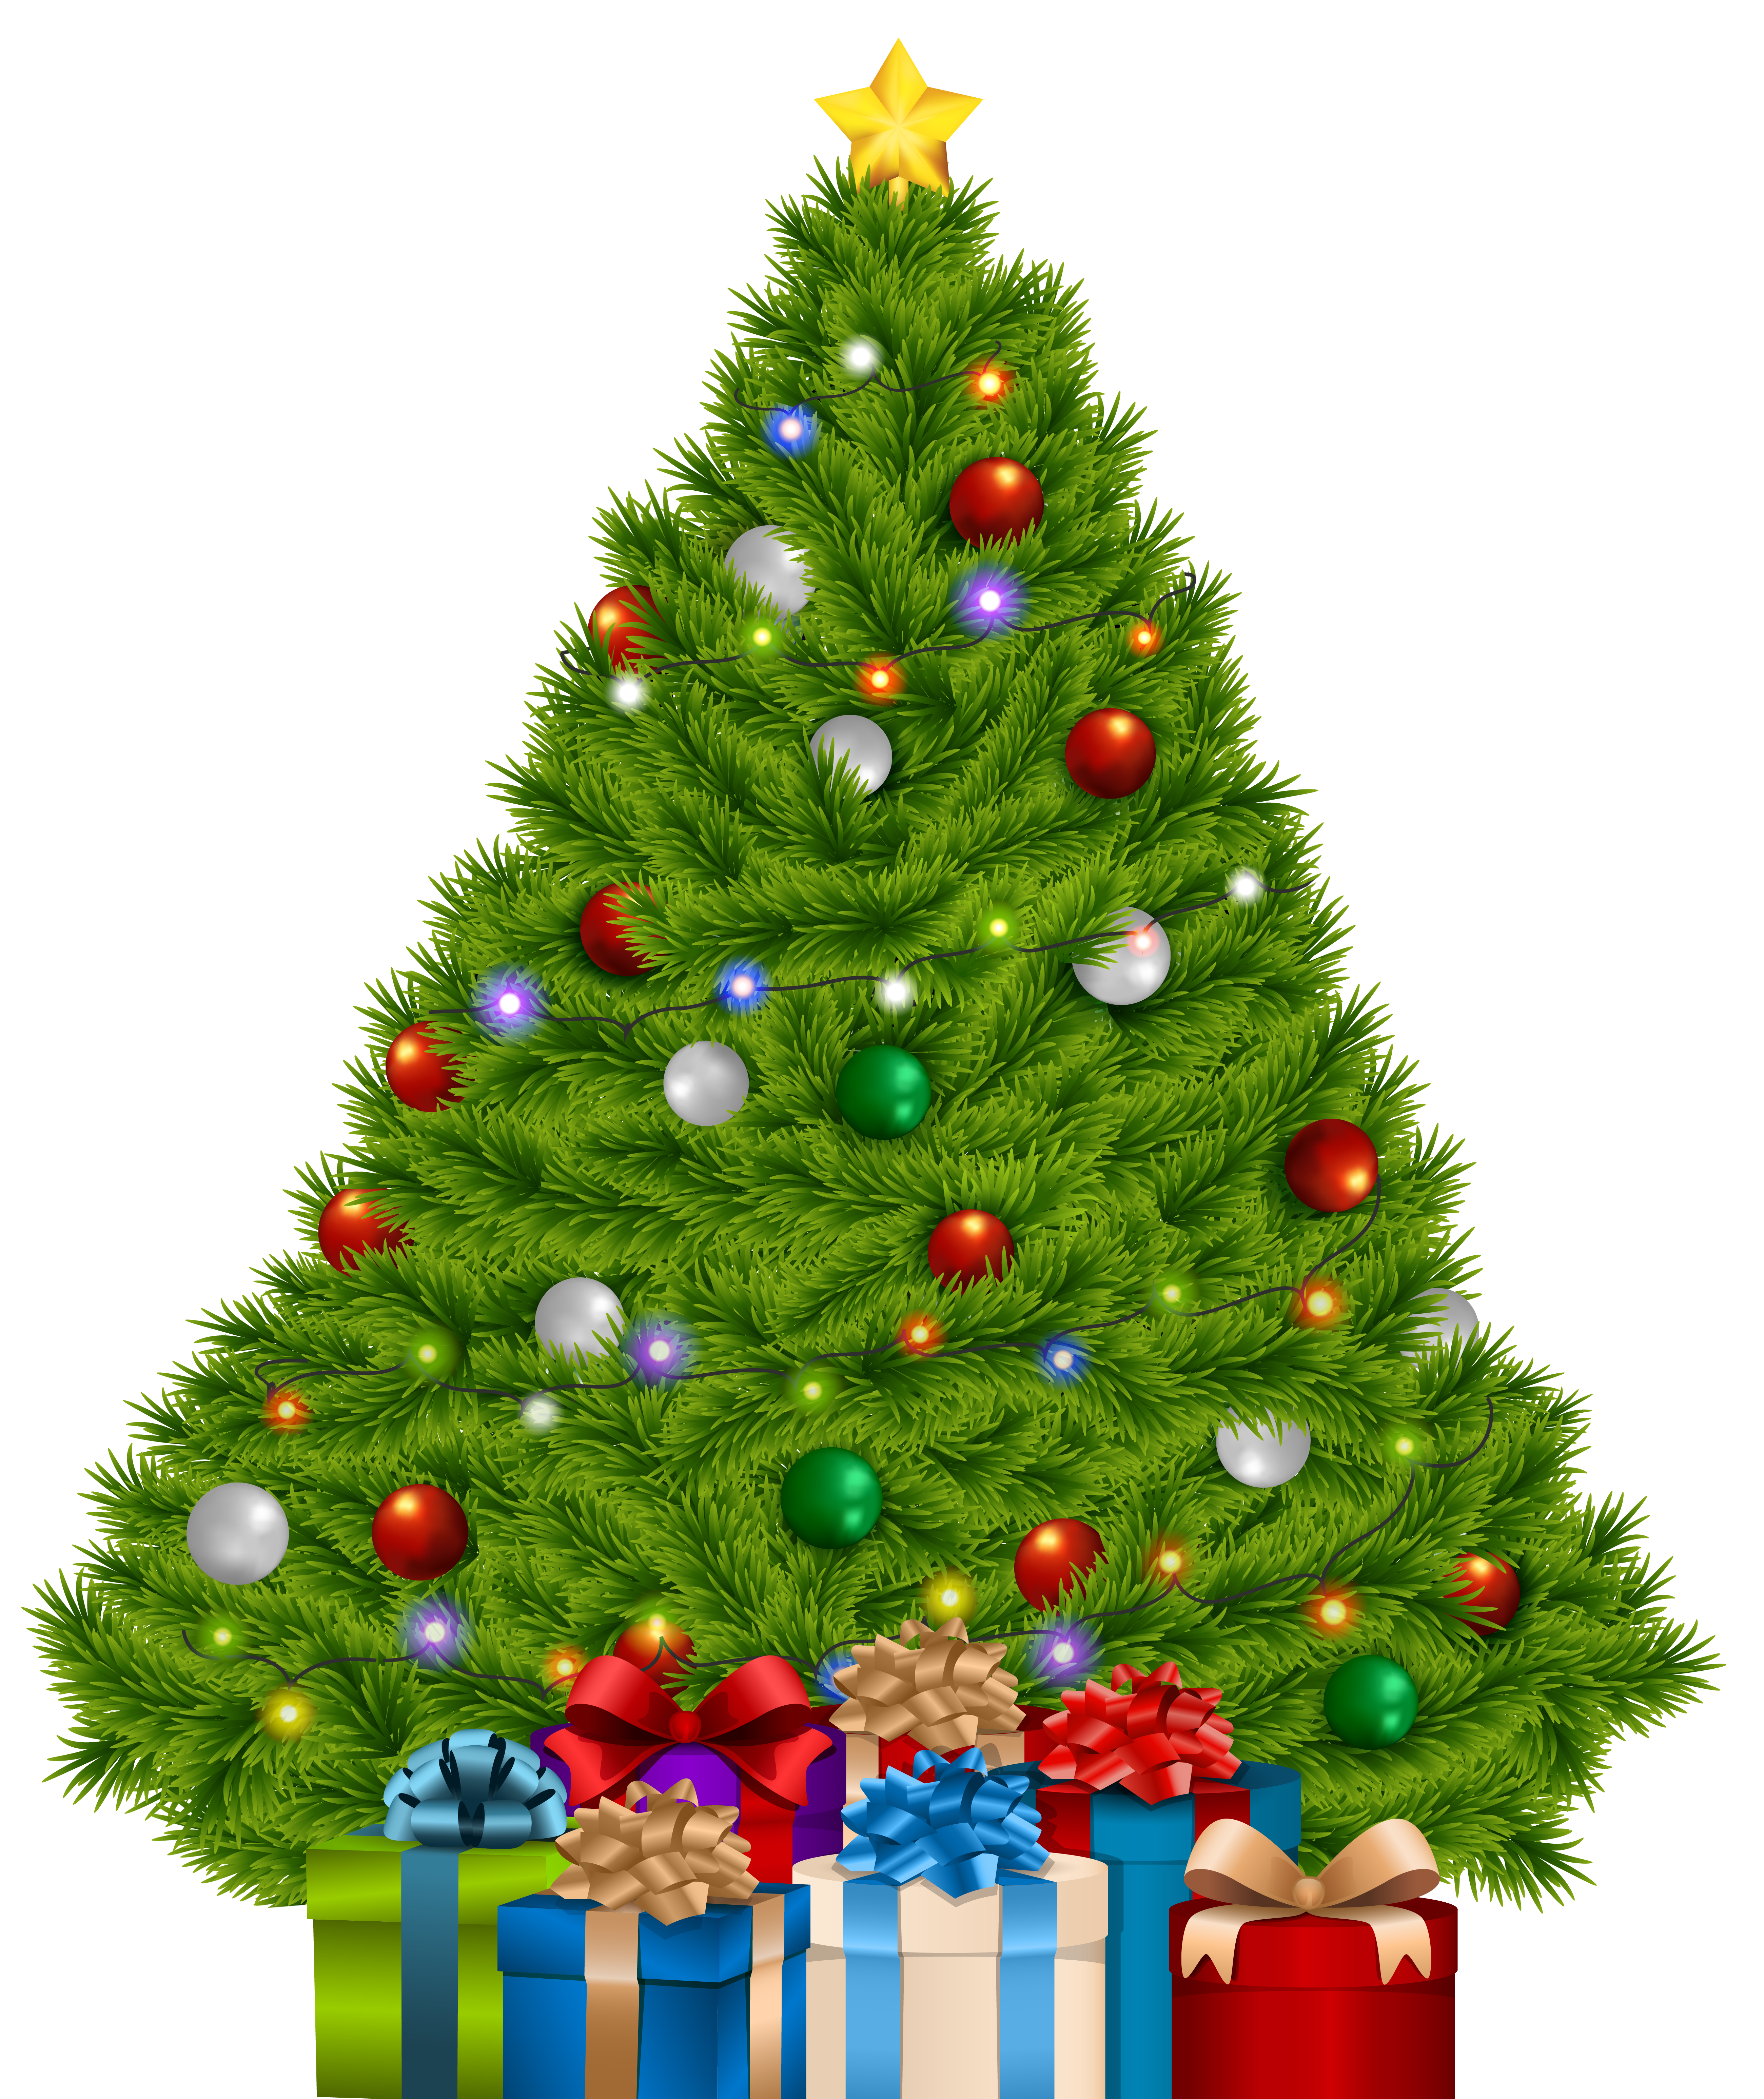 Large christmas tree clipart graphic transparent download Extra Large Christmas Tree with Gifts PNG Clip Art Image | Gallery ... graphic transparent download